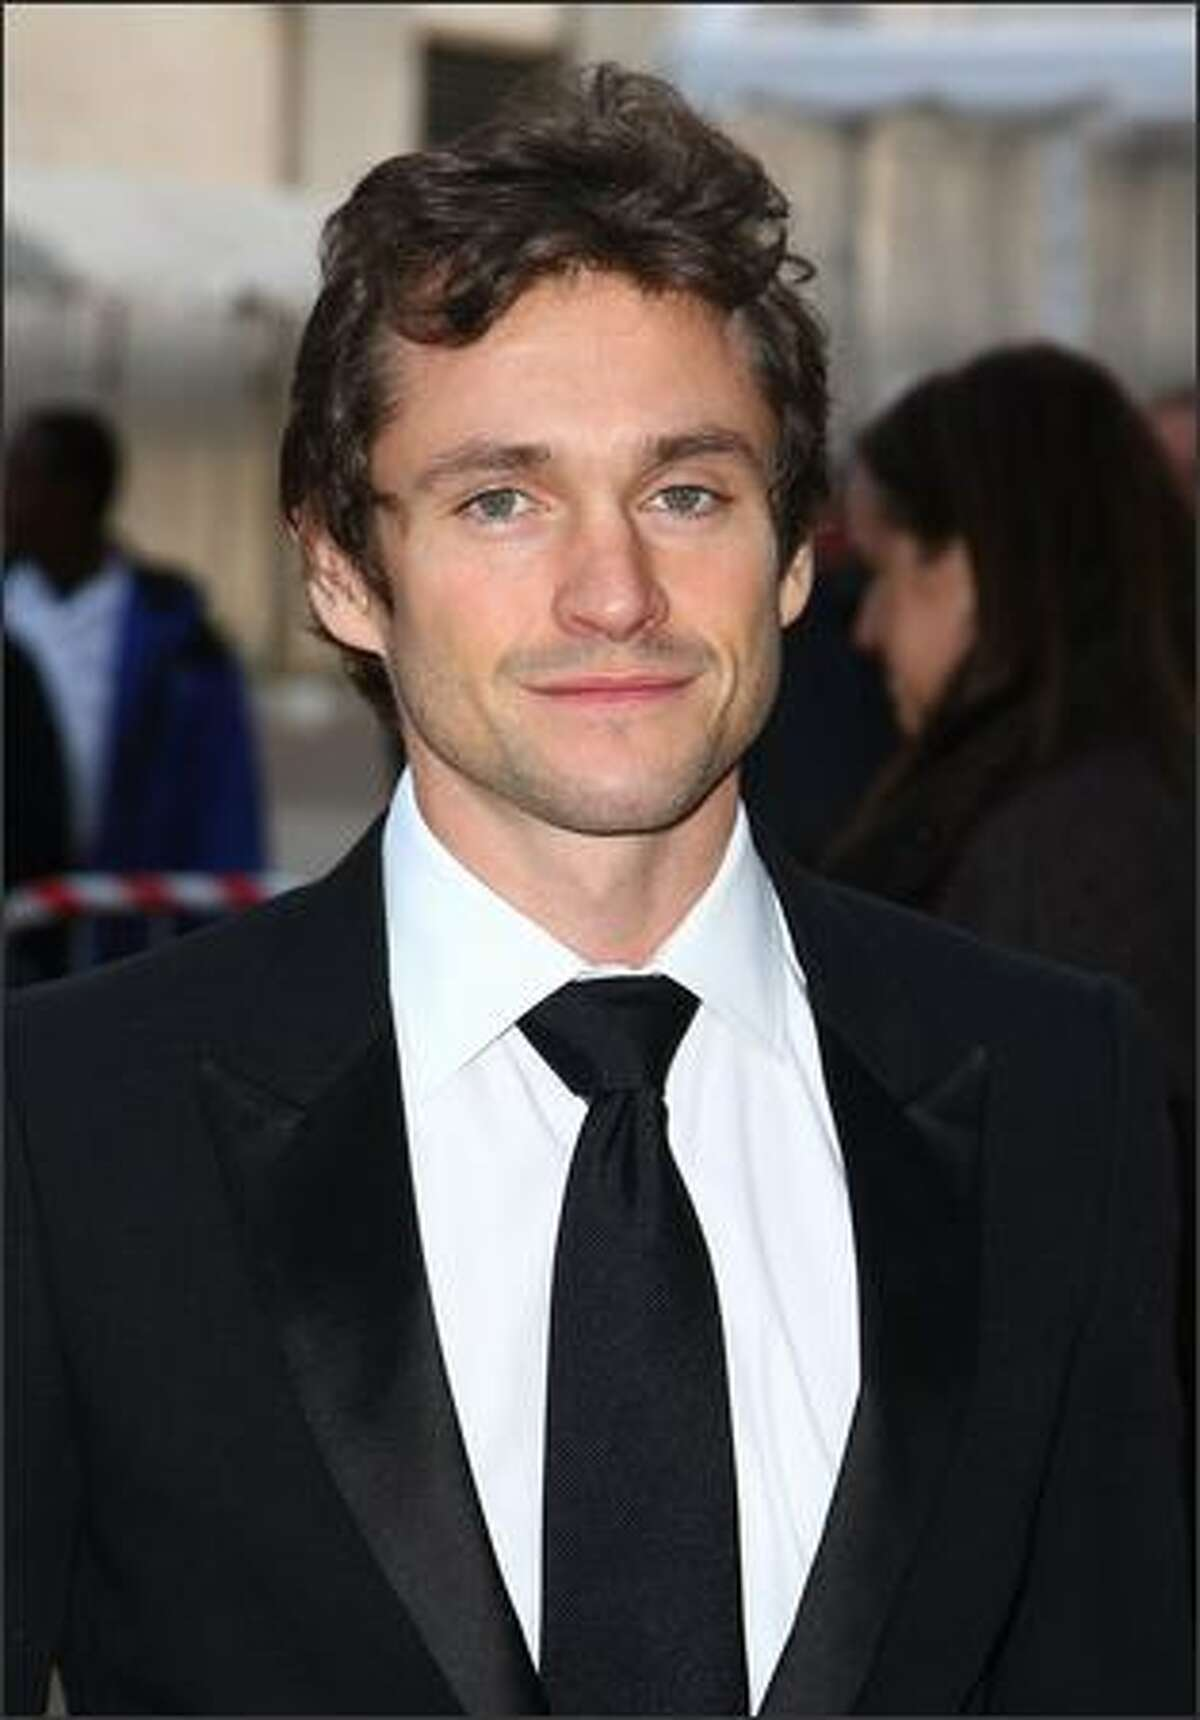 Hugh Dancy attends the 69th Annual American Ballet Theatre Spring Gala at The Metropolitan Opera House in New York City.